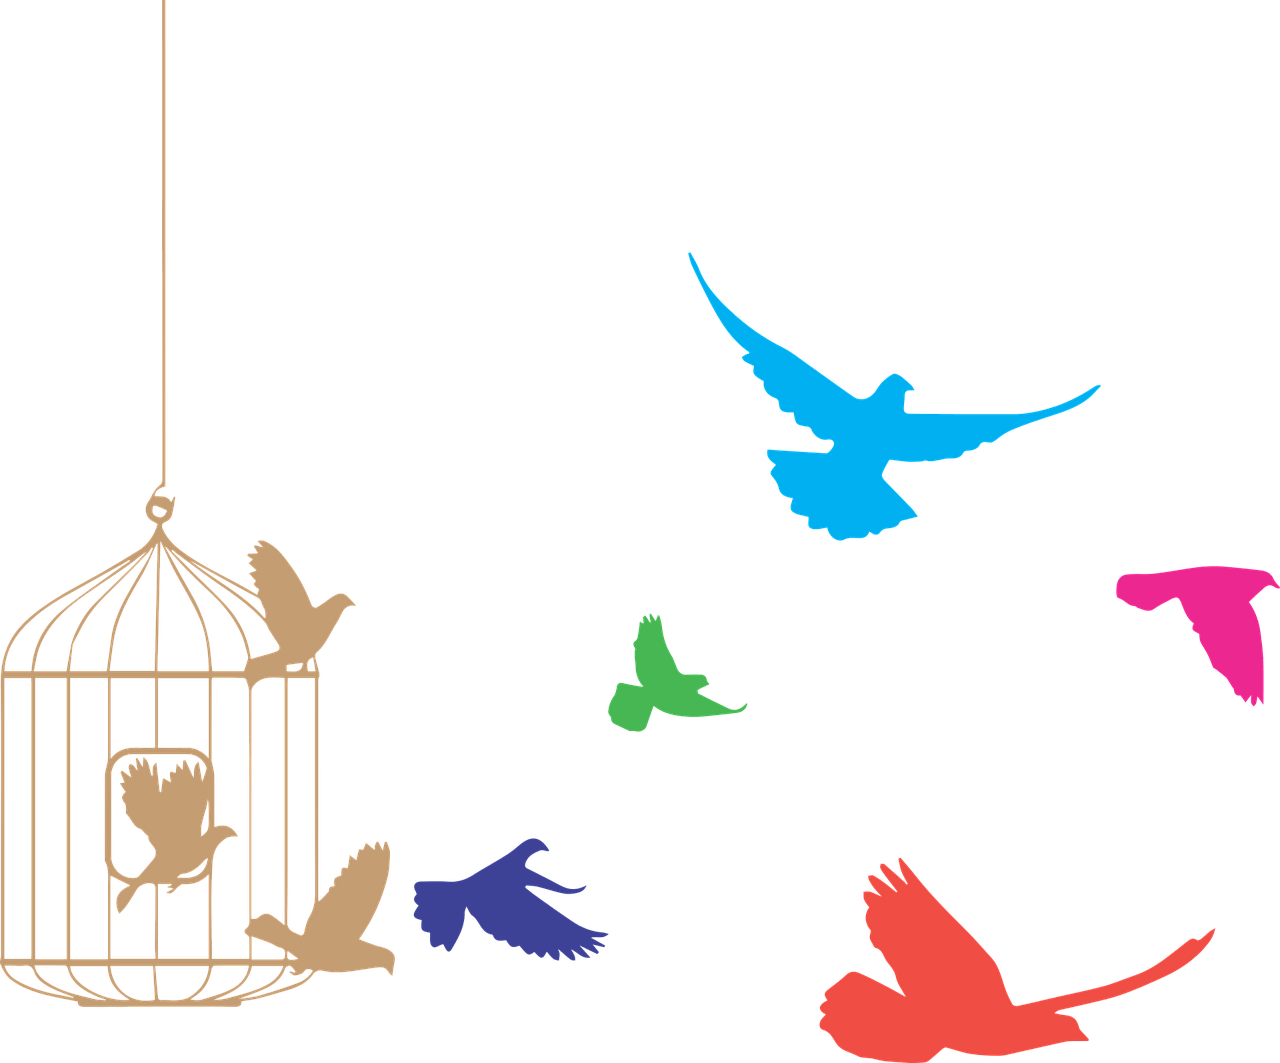 Bird fling out of cage png. Birds flying from clipart